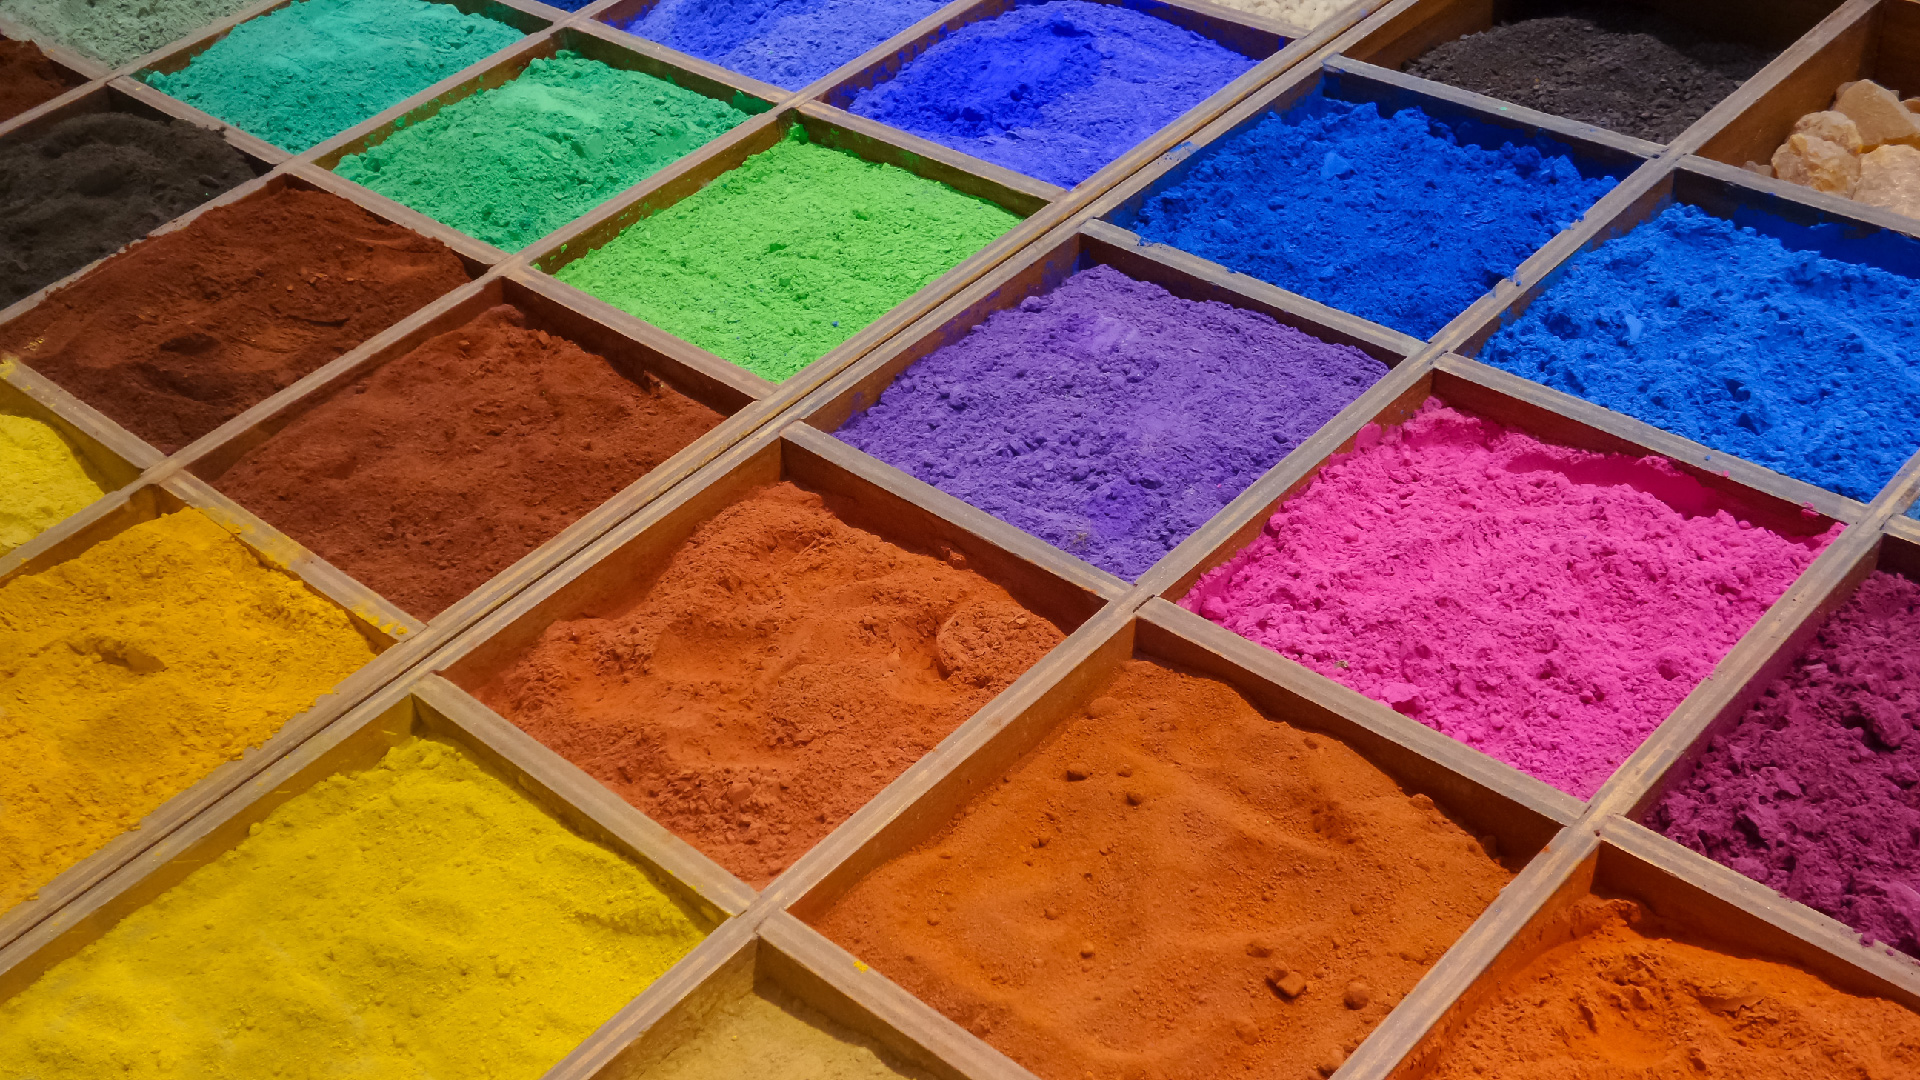 Bright, colorful pigment powders in a grid